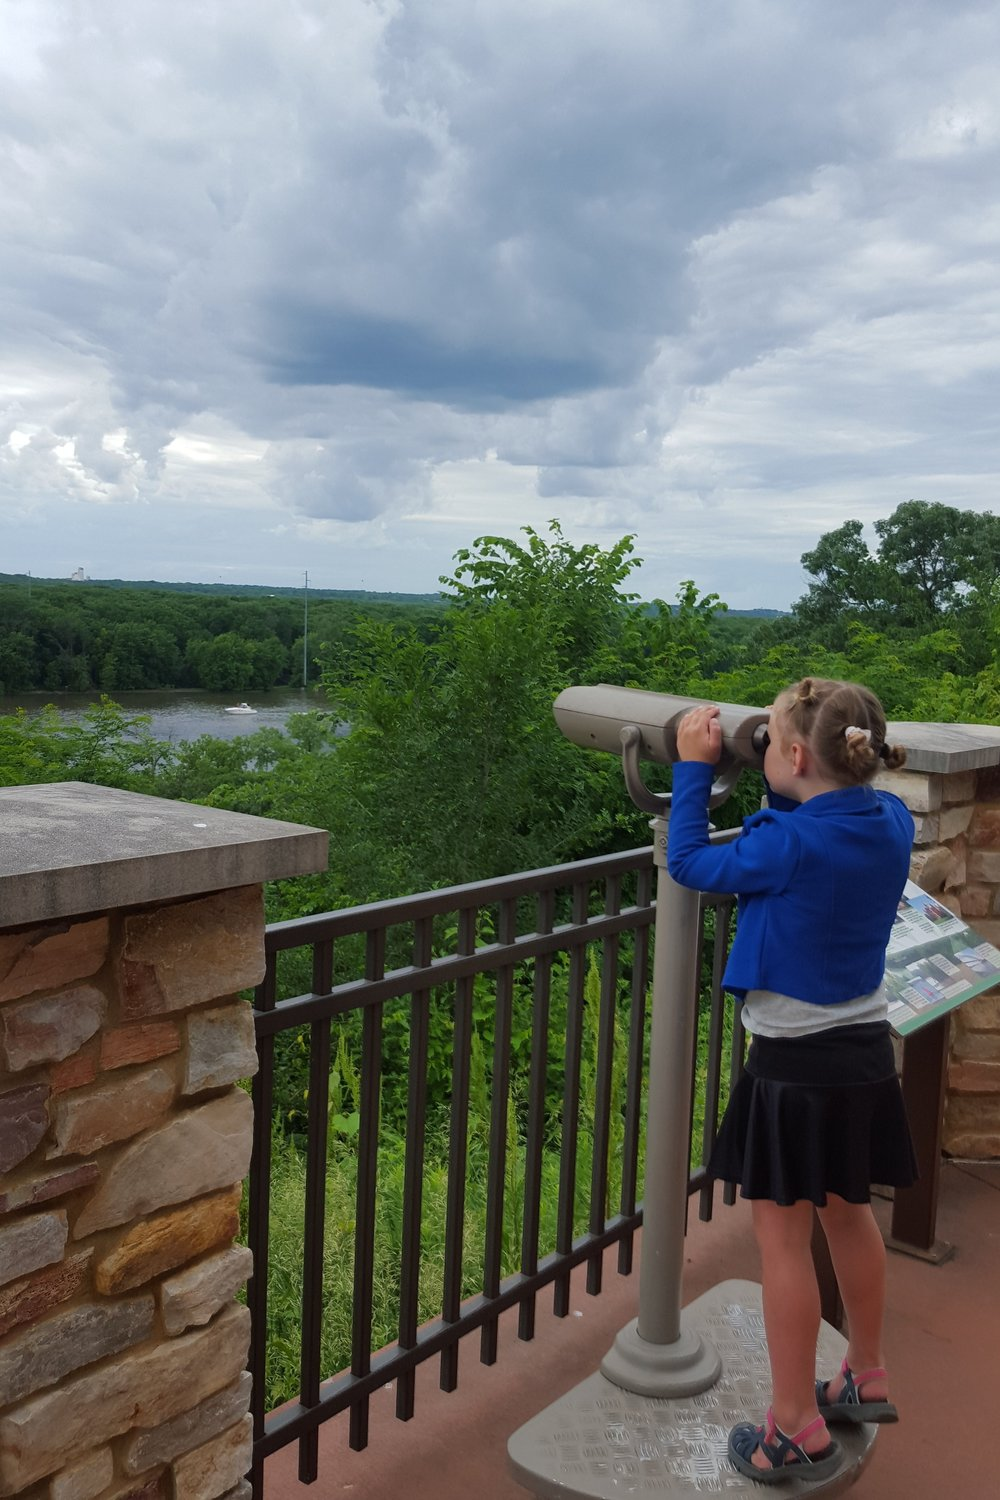 Taking a look at where the Mississippi River and the St. Croix River meet in Prescott, WI.